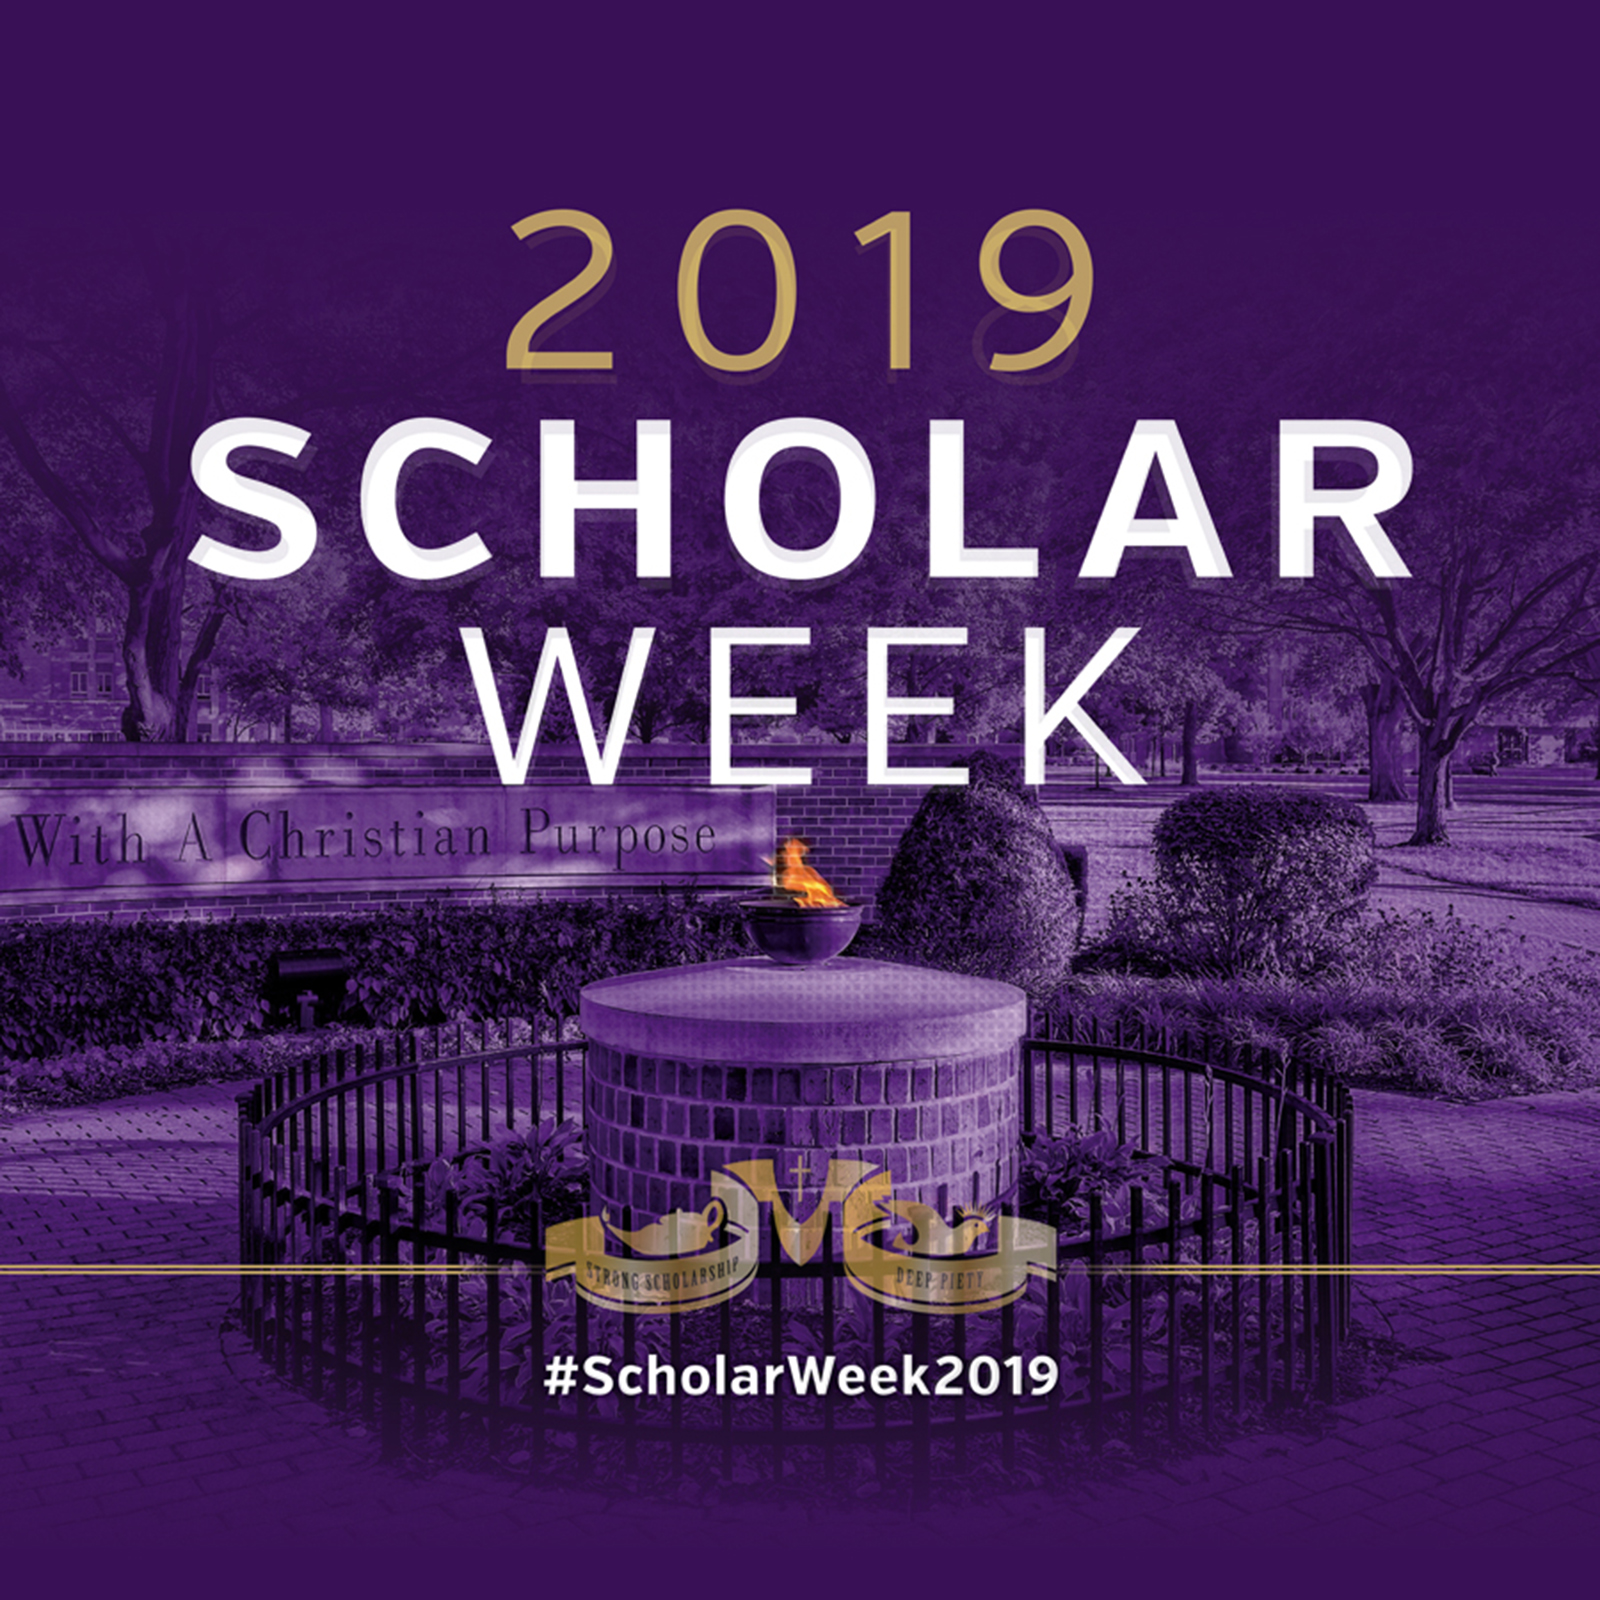 Olivet_scholar_week_academic_honors_program_research_student_faculty_web3.jpg